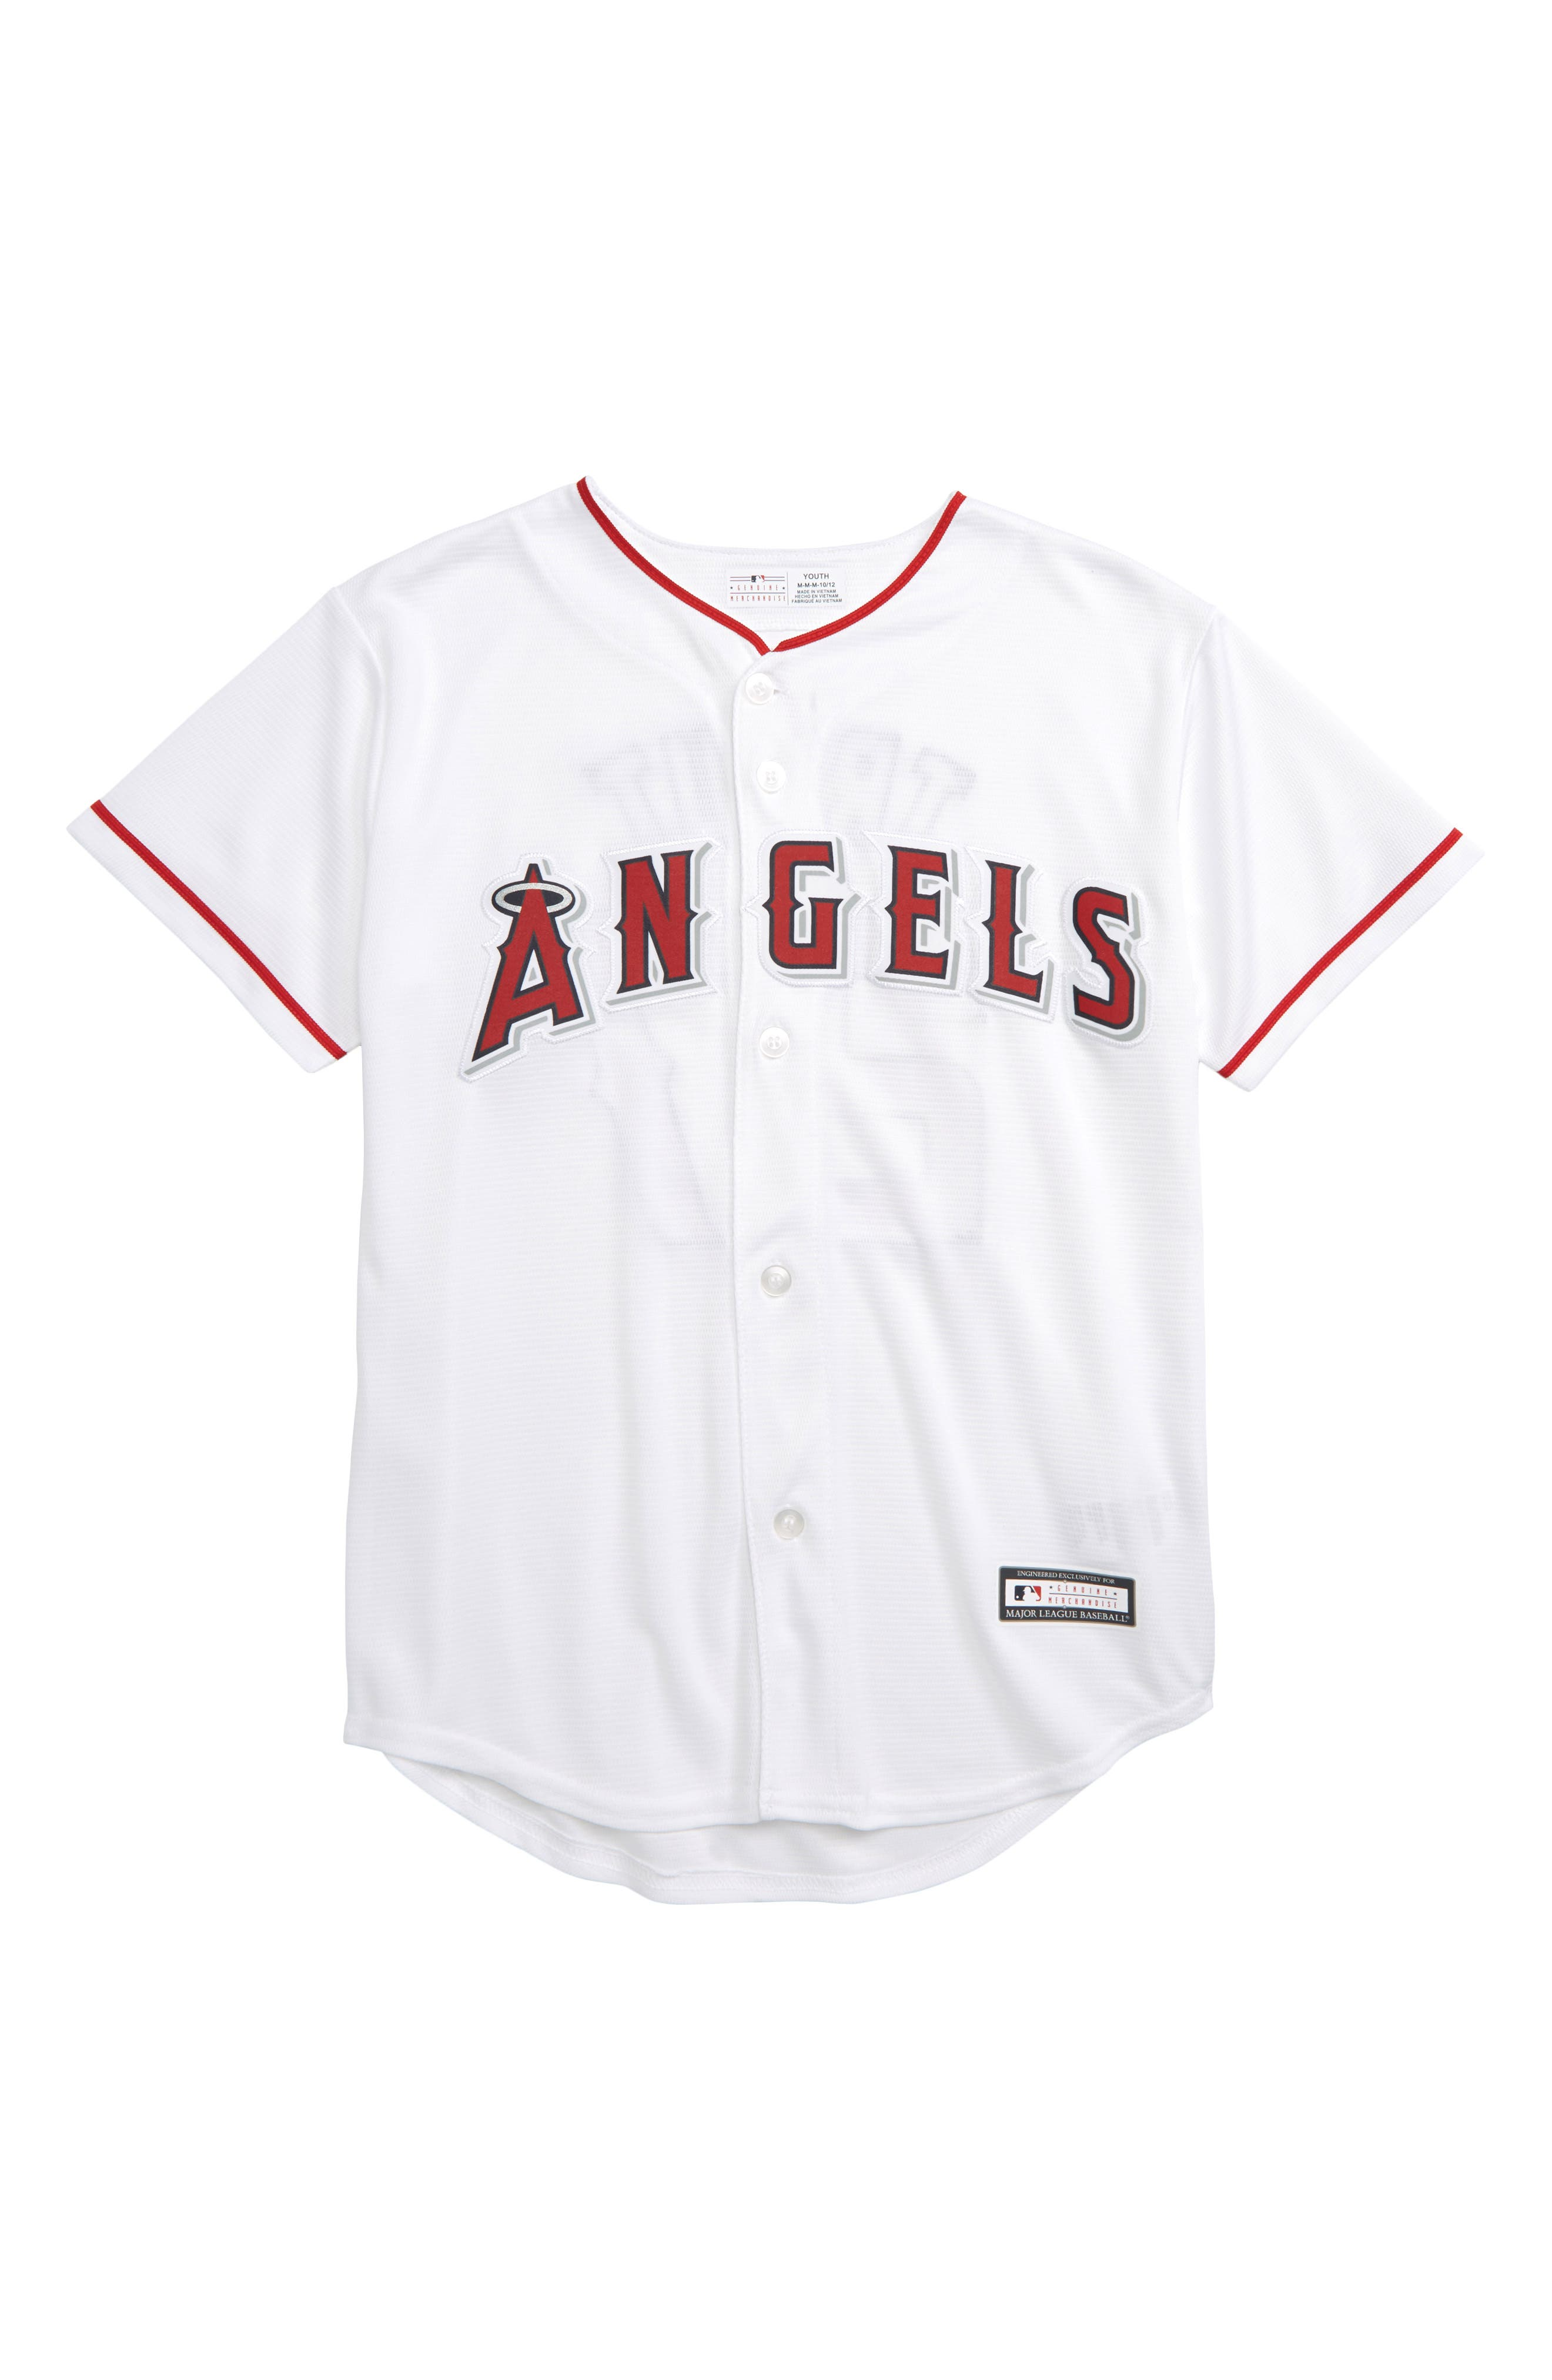 Los Angeles Angels - Mike Trout Baseball Jersey,                             Main thumbnail 1, color,                             100